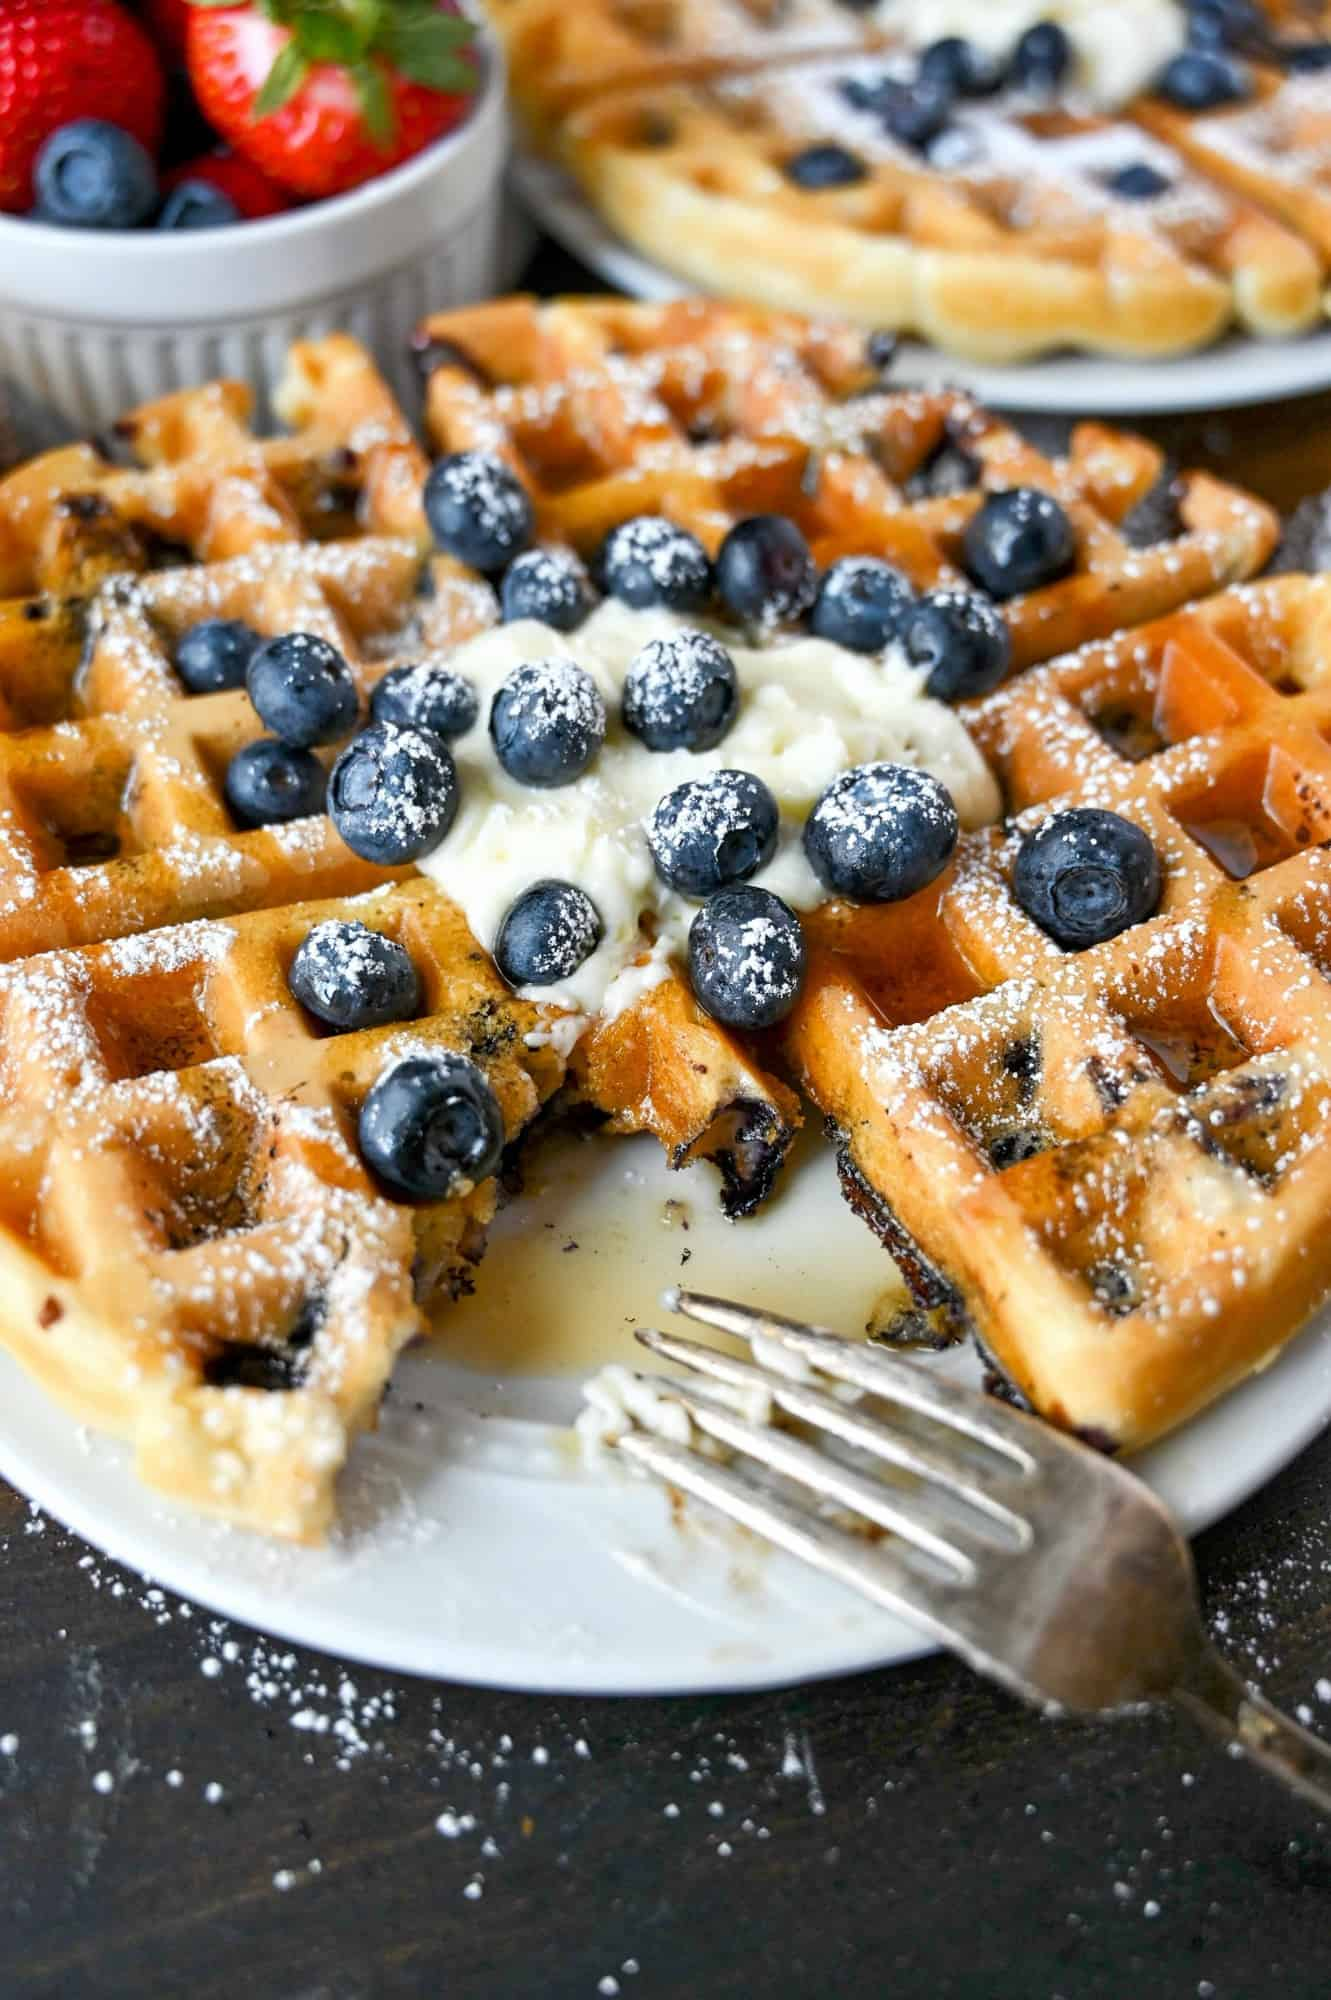 Blueberry waffle on a plate with a bite missing.